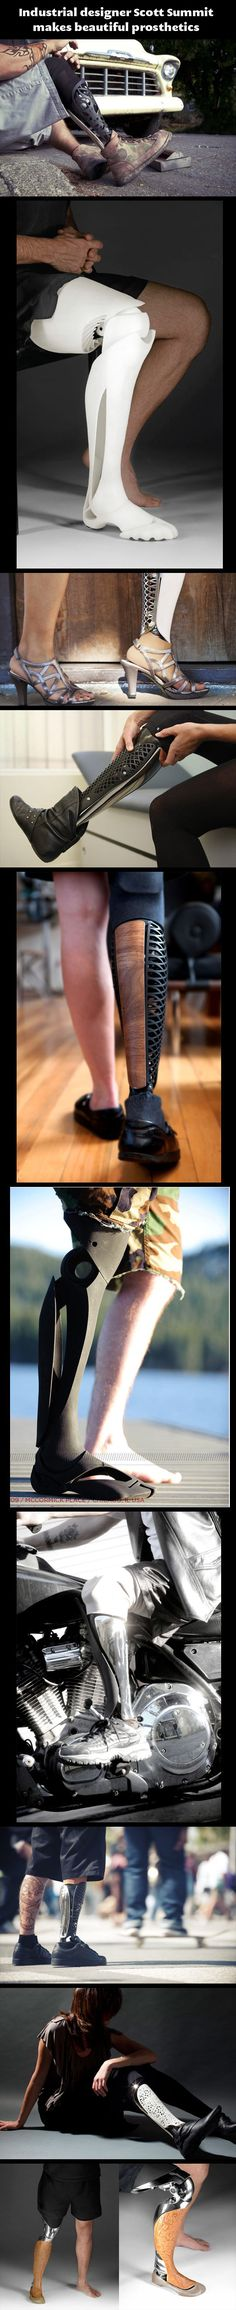 Beautiful prosthesis.